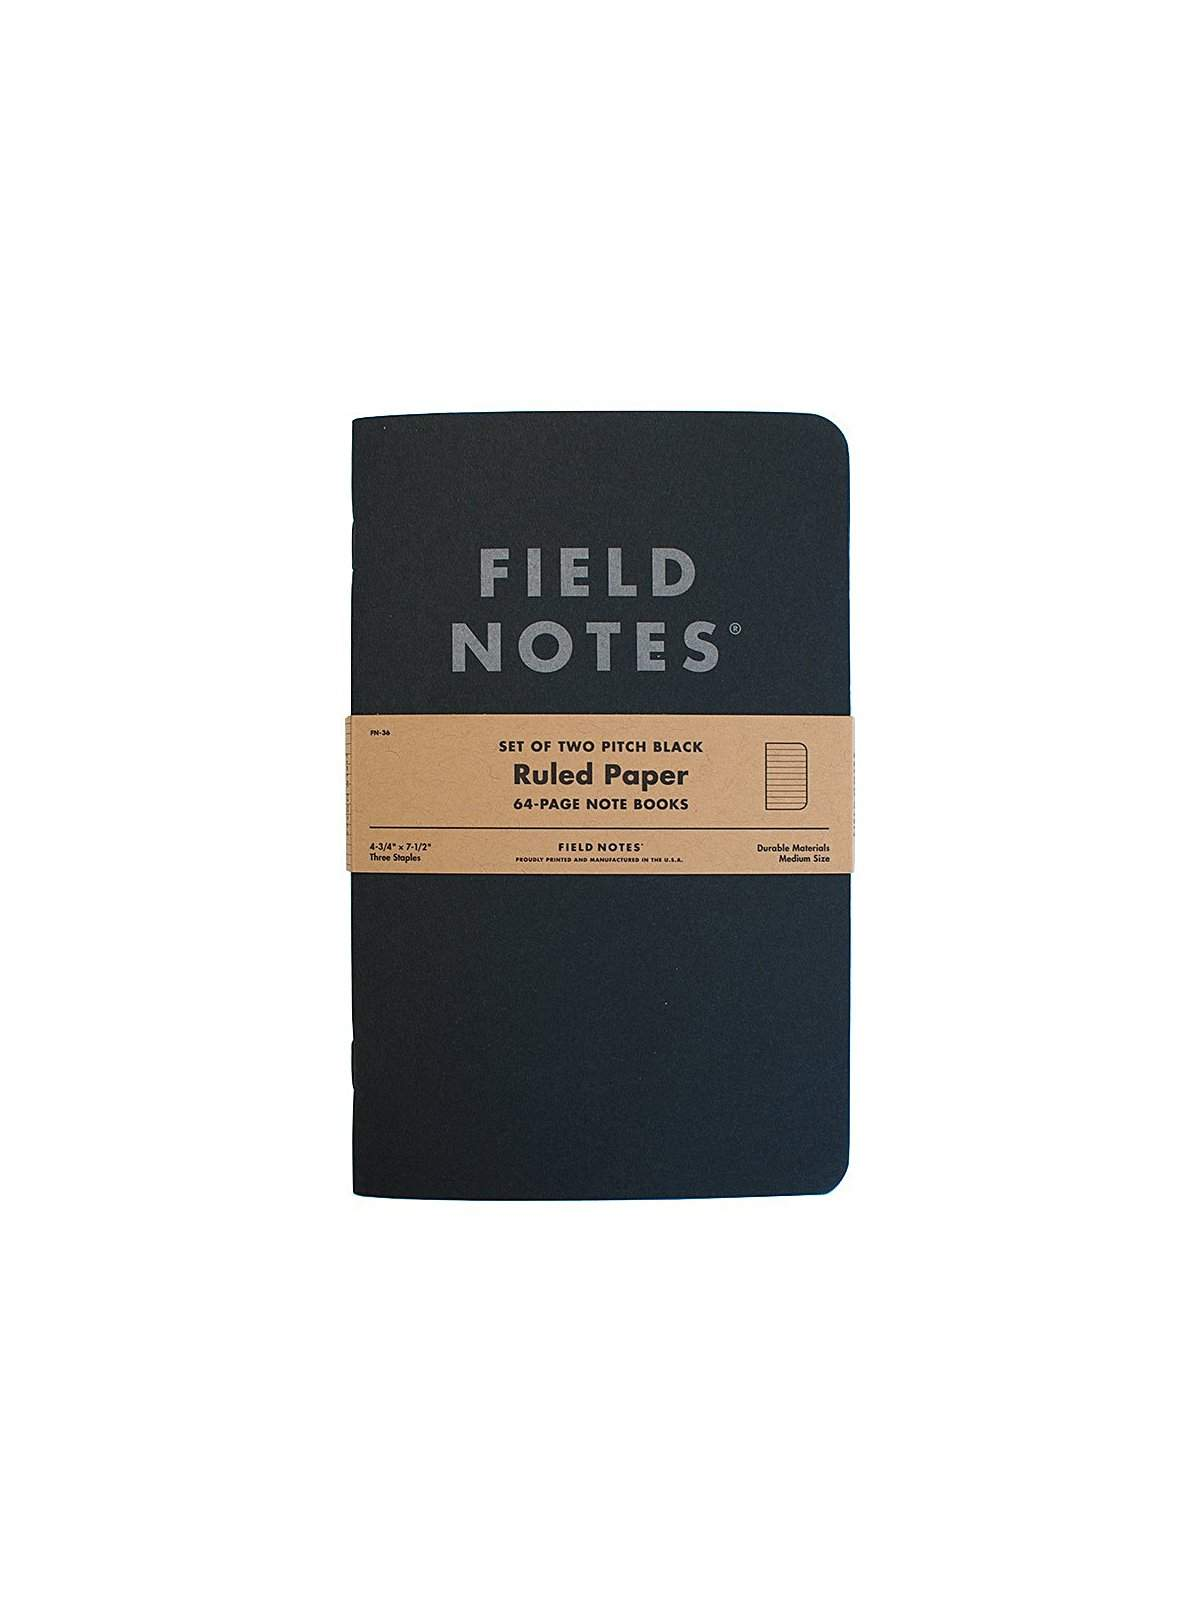 Field Notes Pitch Black Note Book 2 Pack Ruled Paper - MORE by Morello Indonesia